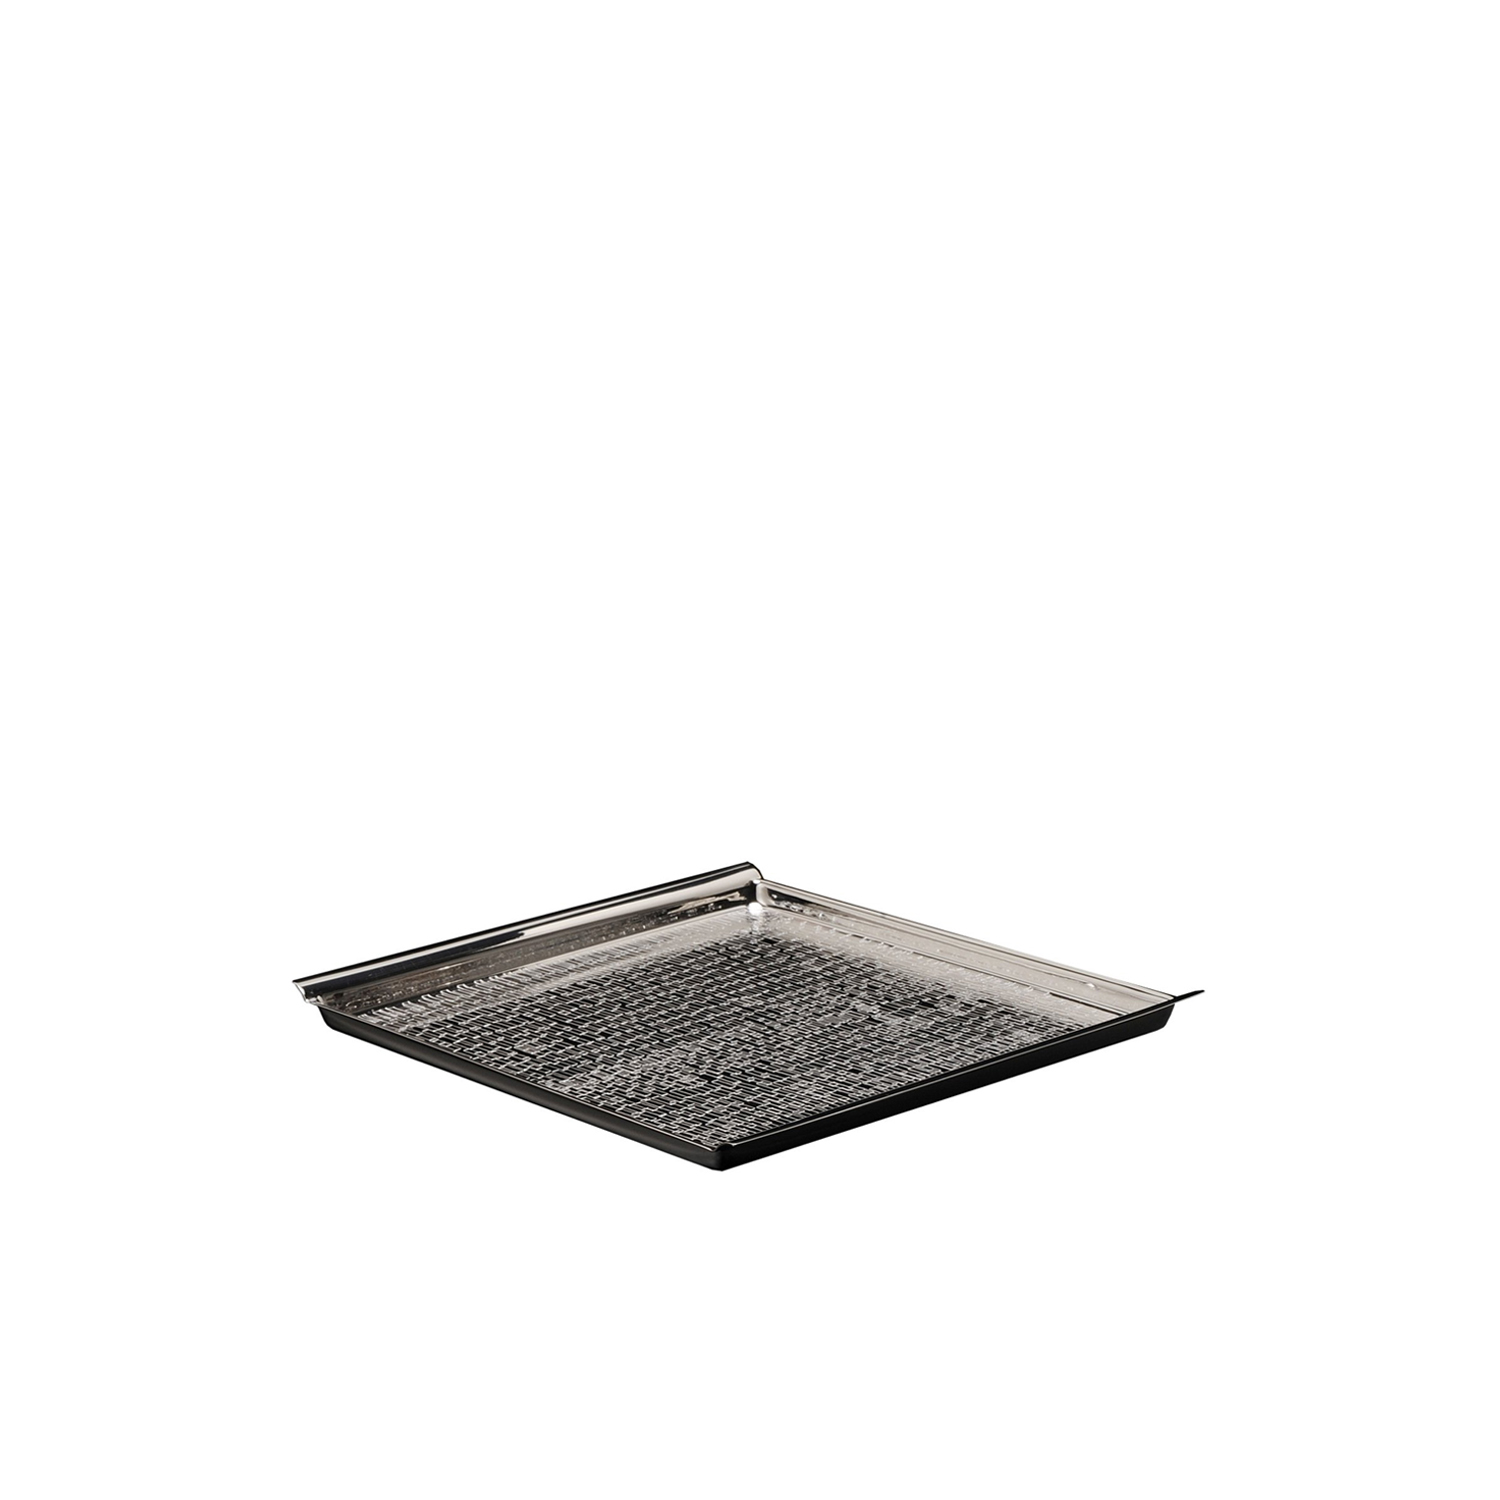 Vancouver Square Tray  - Silver-plated Tray Vancouver model, entirely made by hand. | Matter of Stuff